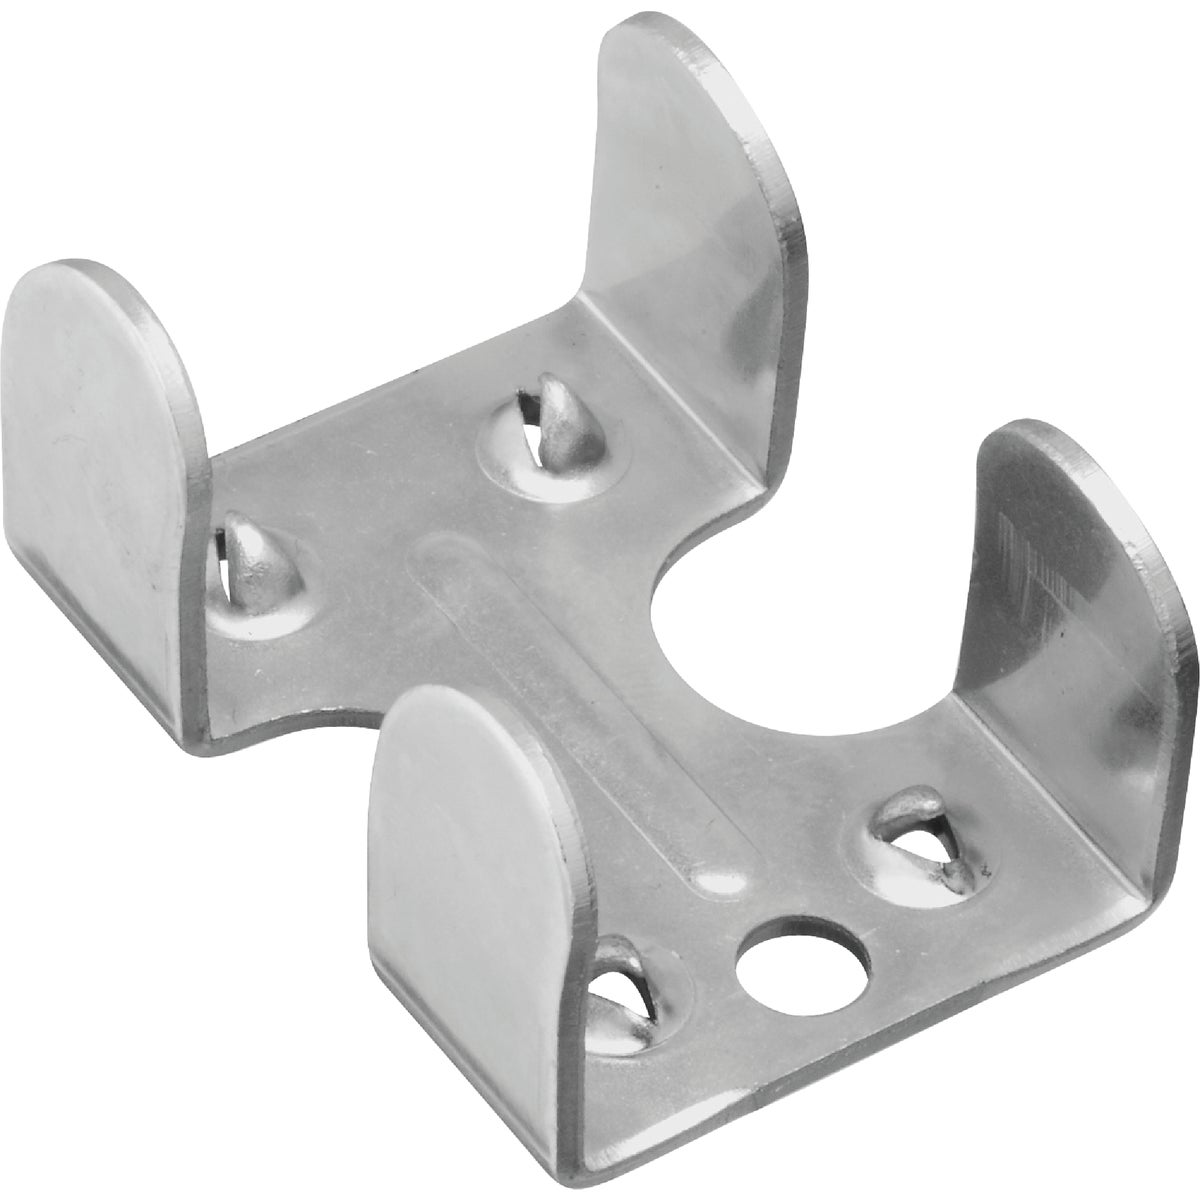 3/8-1/2 ROPE CLAMP - N265884 by National Mfg Co